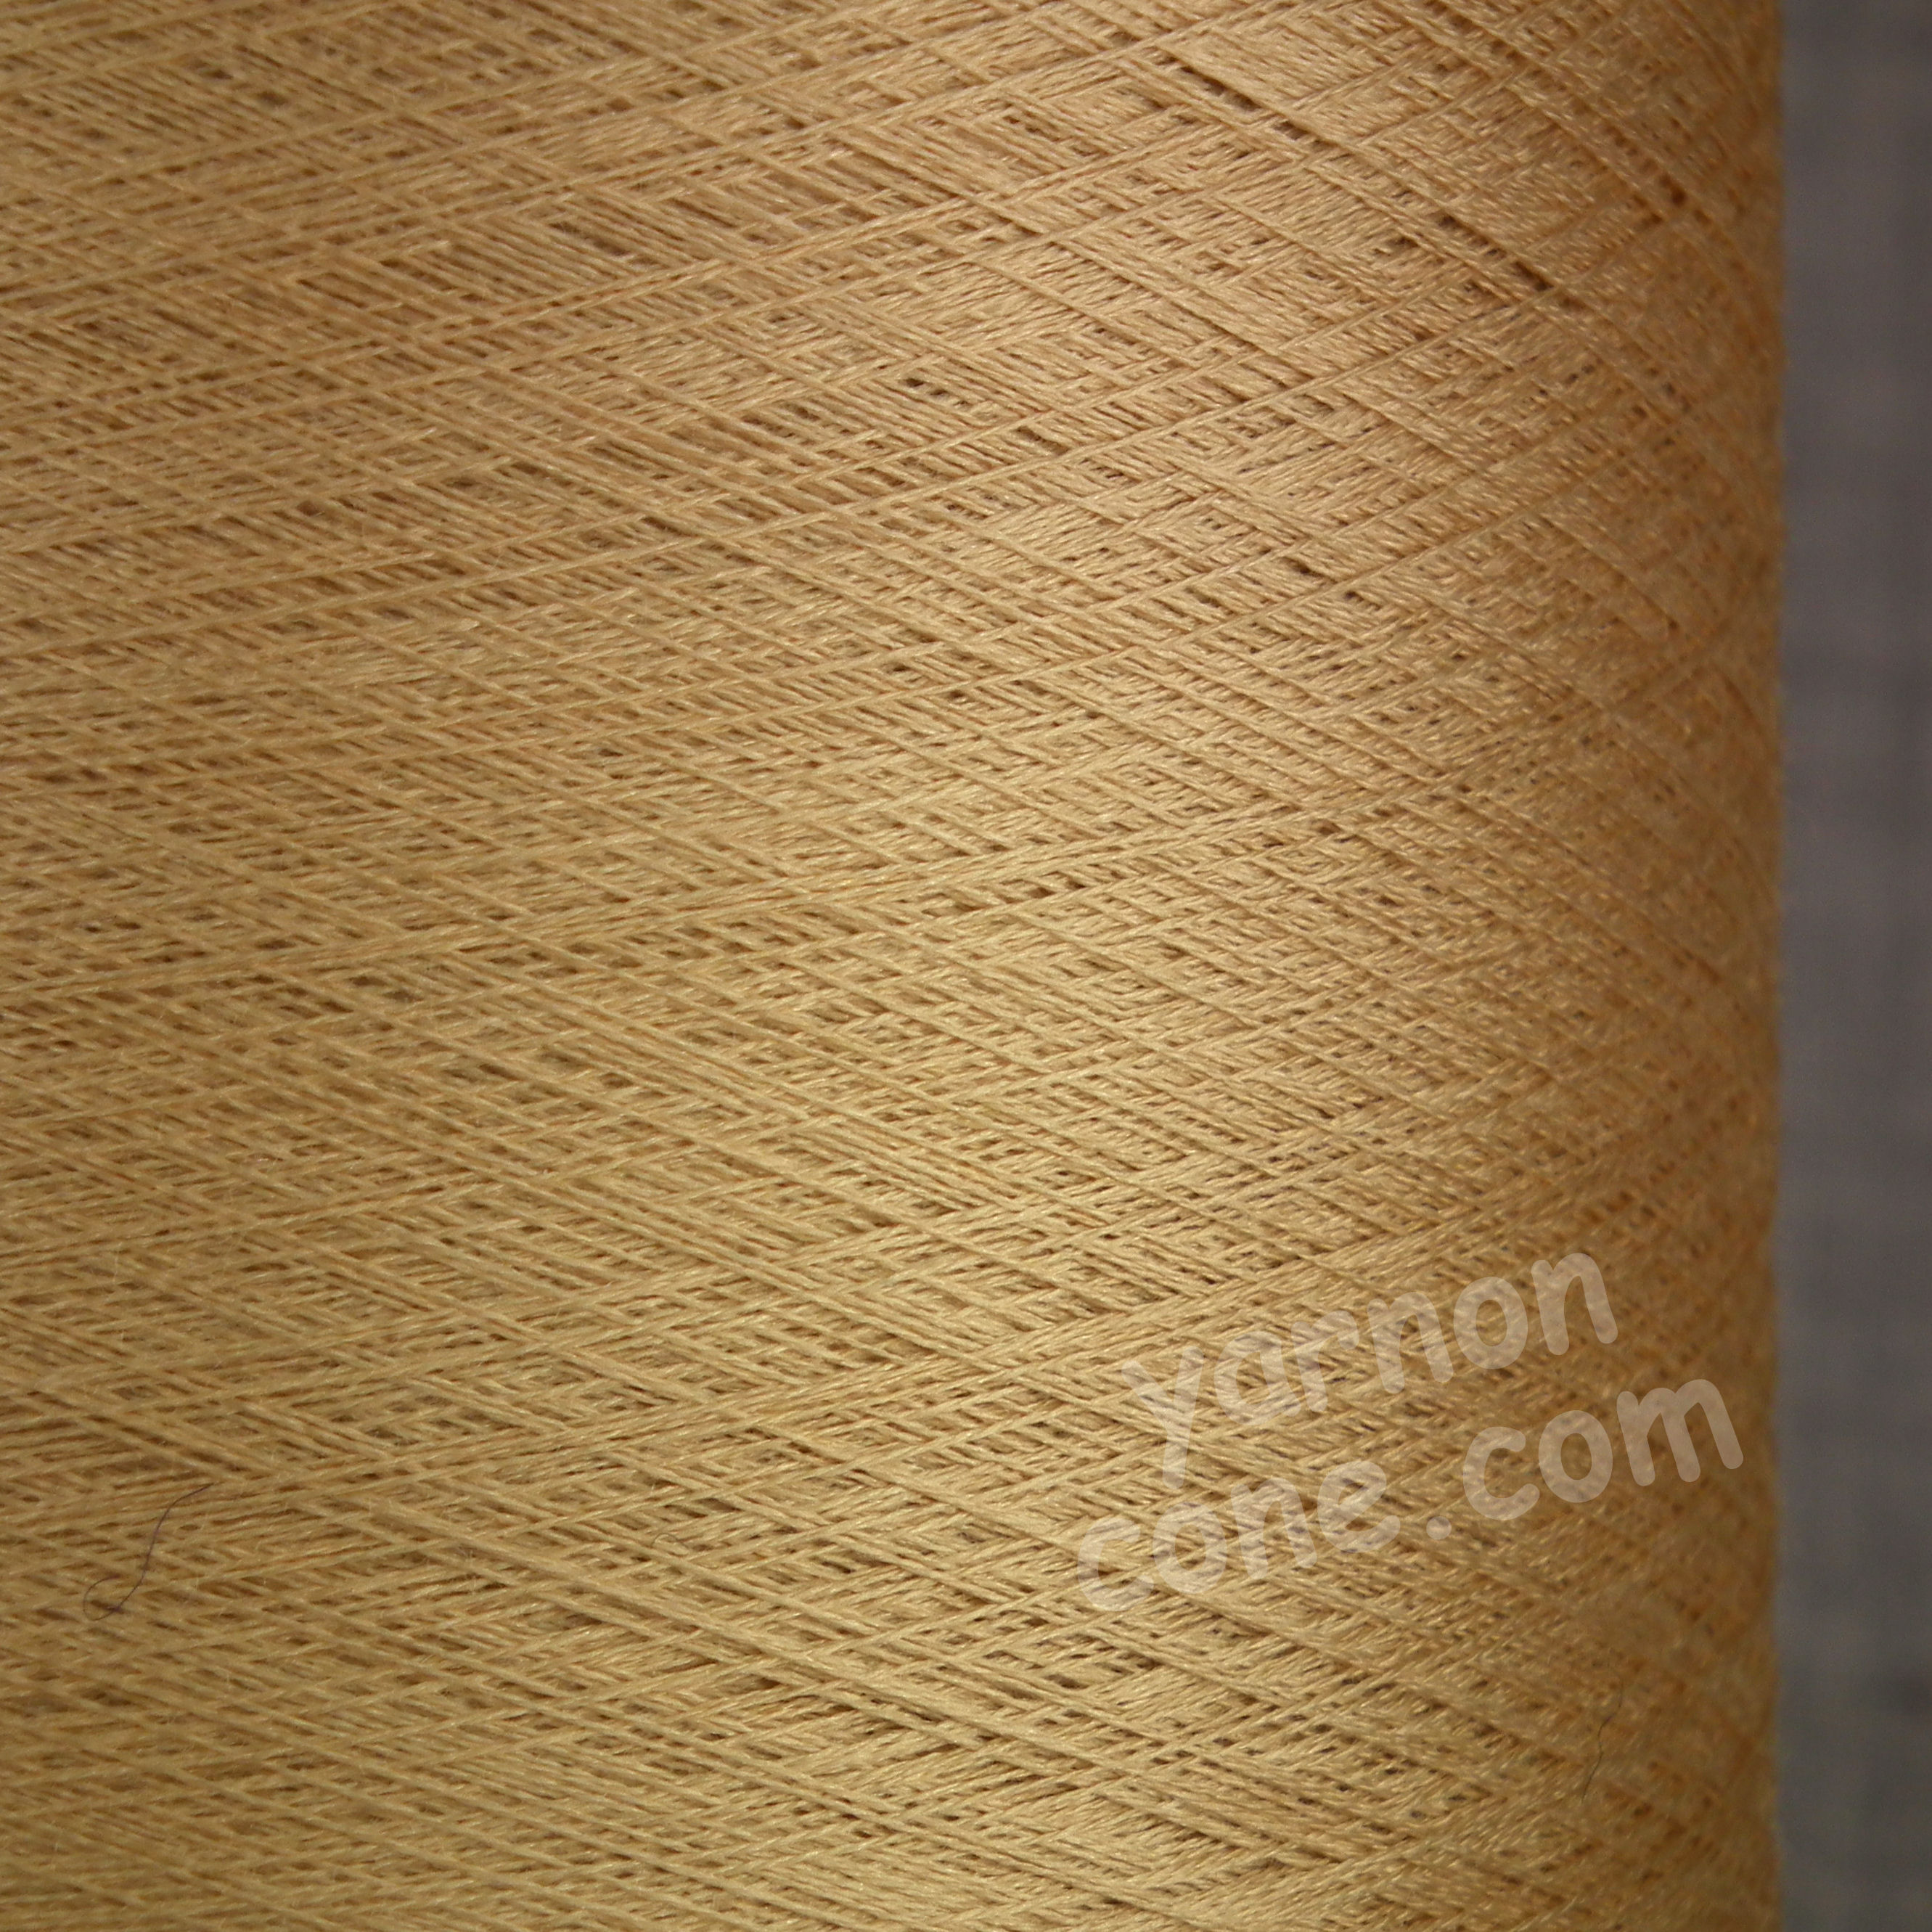 Pure silk cobweb yarn 2/120 NM italian 2/120NM on cone weaving knitting gold